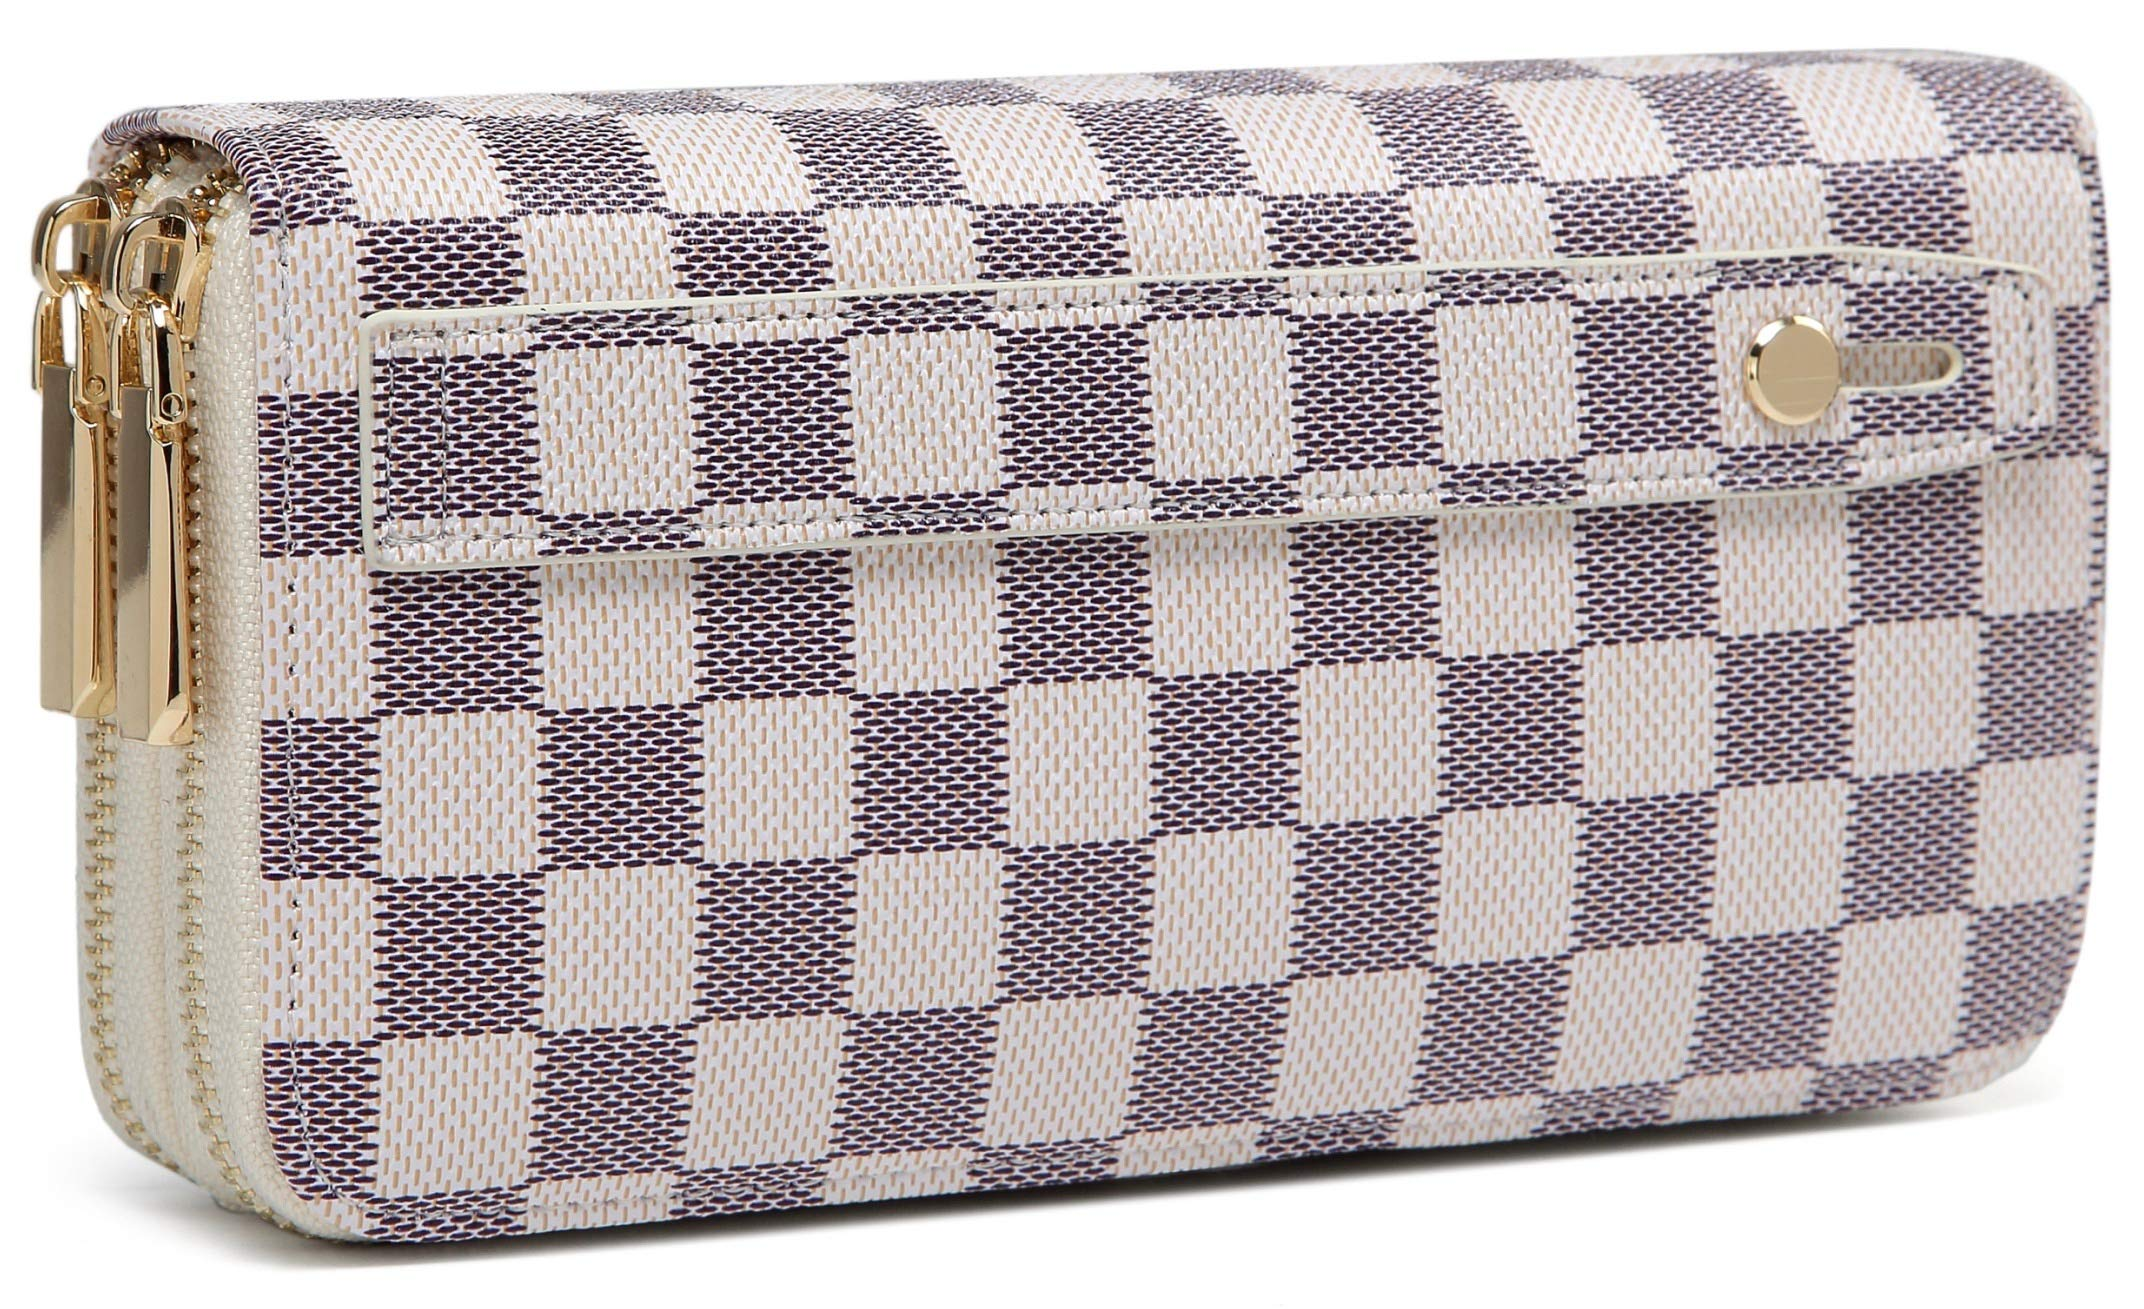 Daisy Rose Dual Zip Wallet-RFID Checkered Hand Strap Clutch- PU Vegan Leather